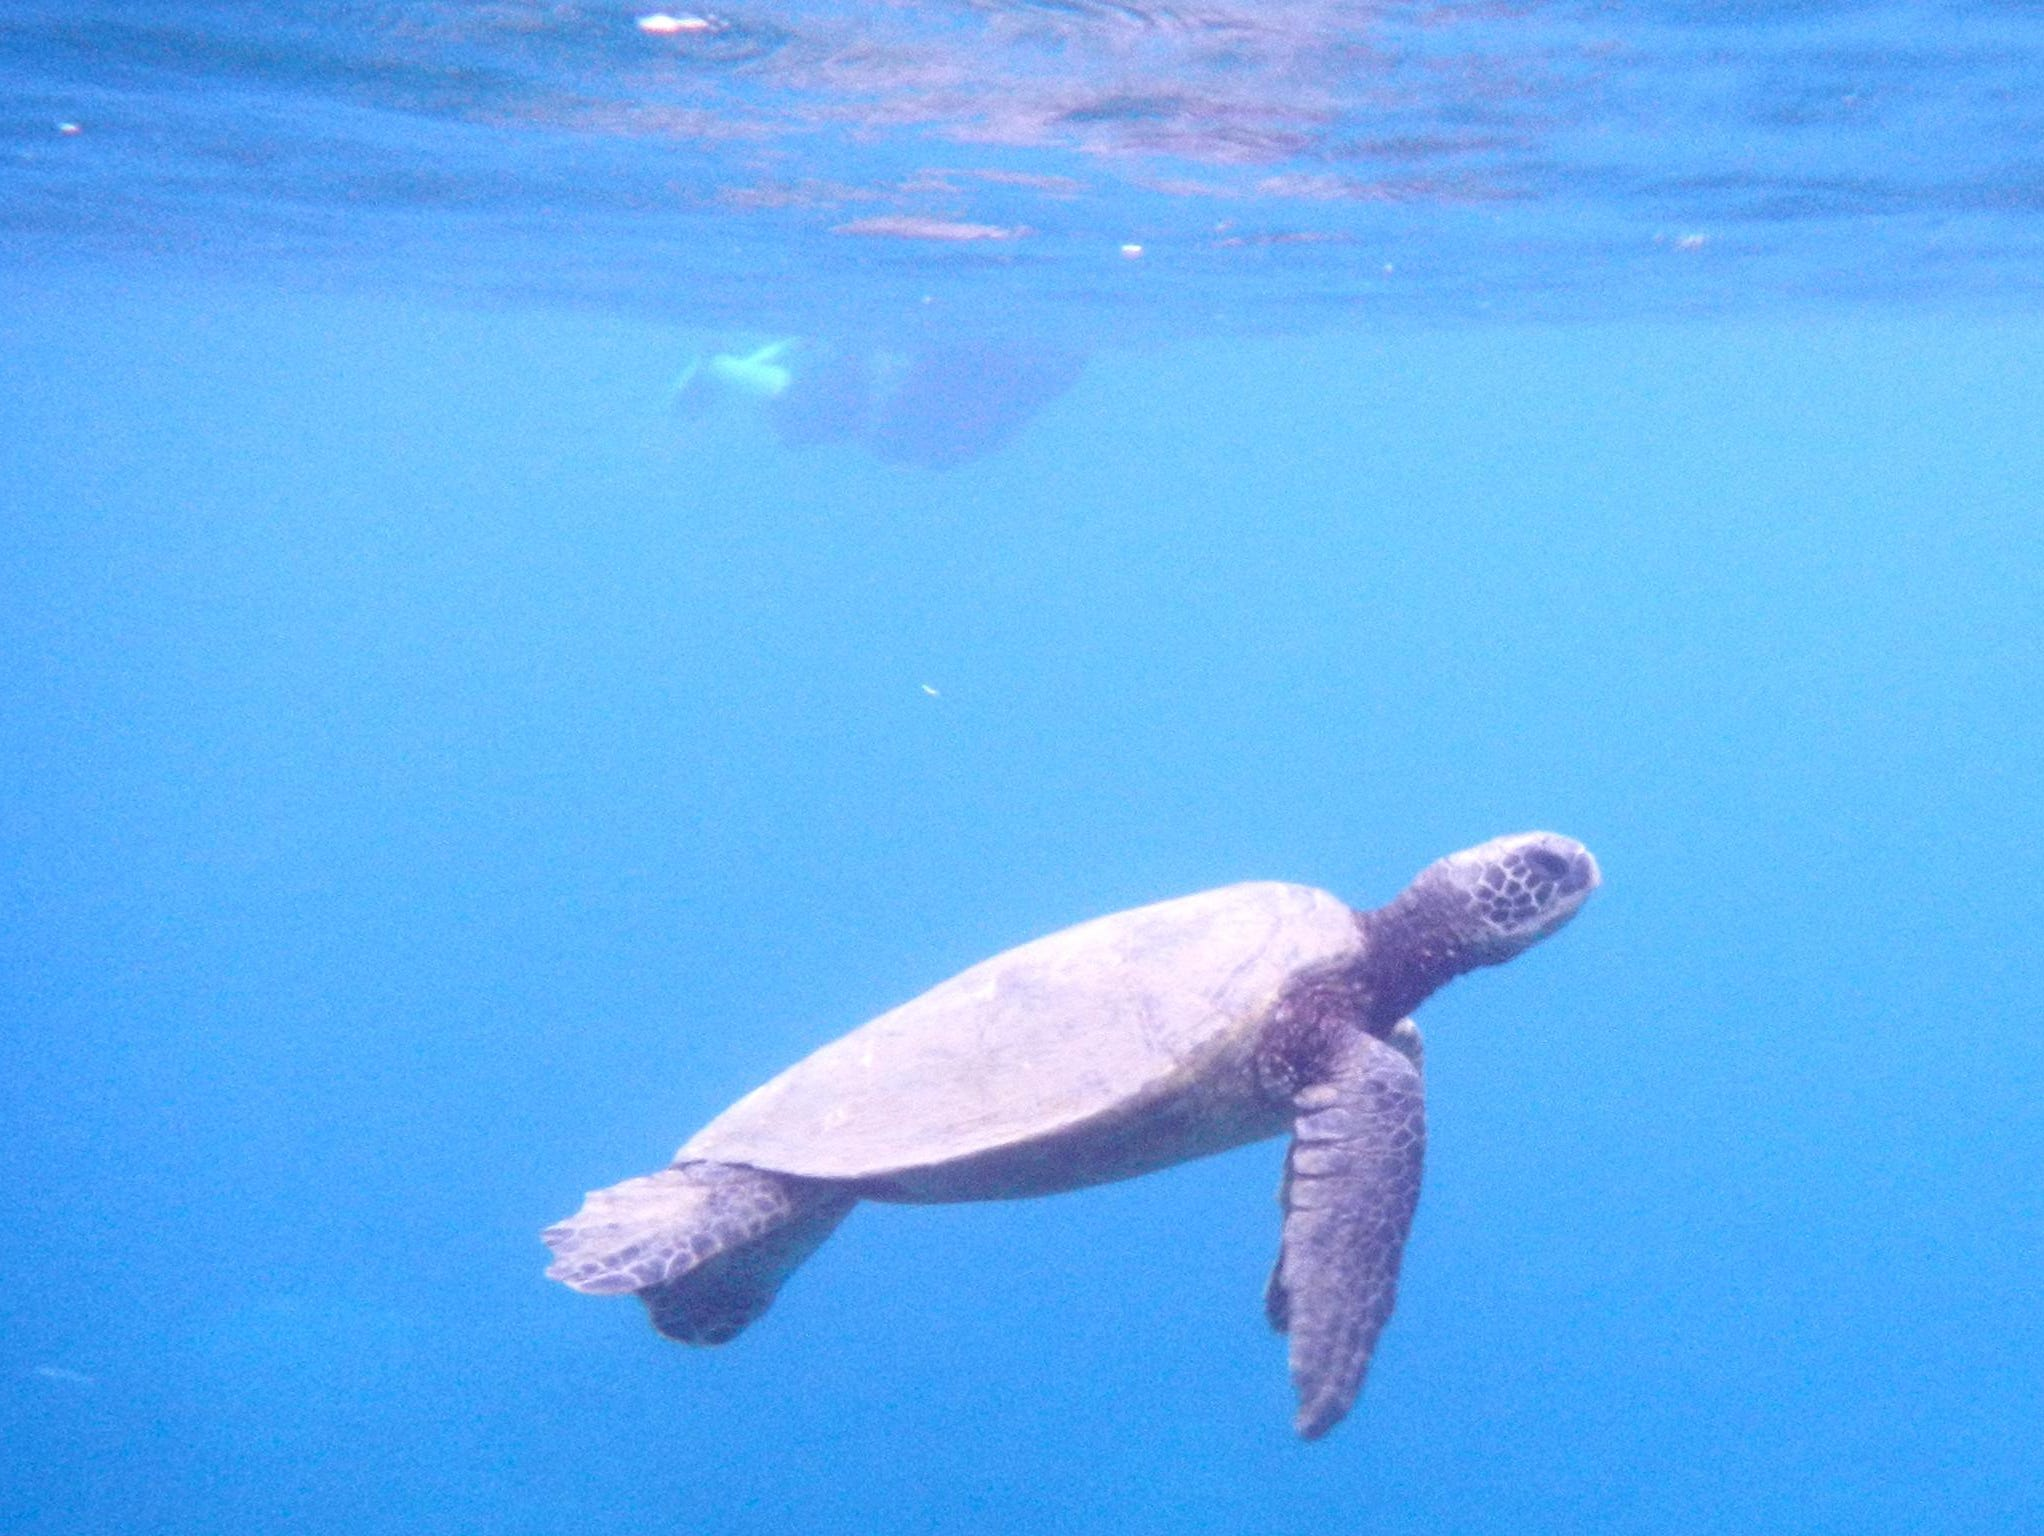 When conditions are right, Un-Cruise provides snorkeling trips to a green sea-turtle feeding ground off the western coast of Maui.